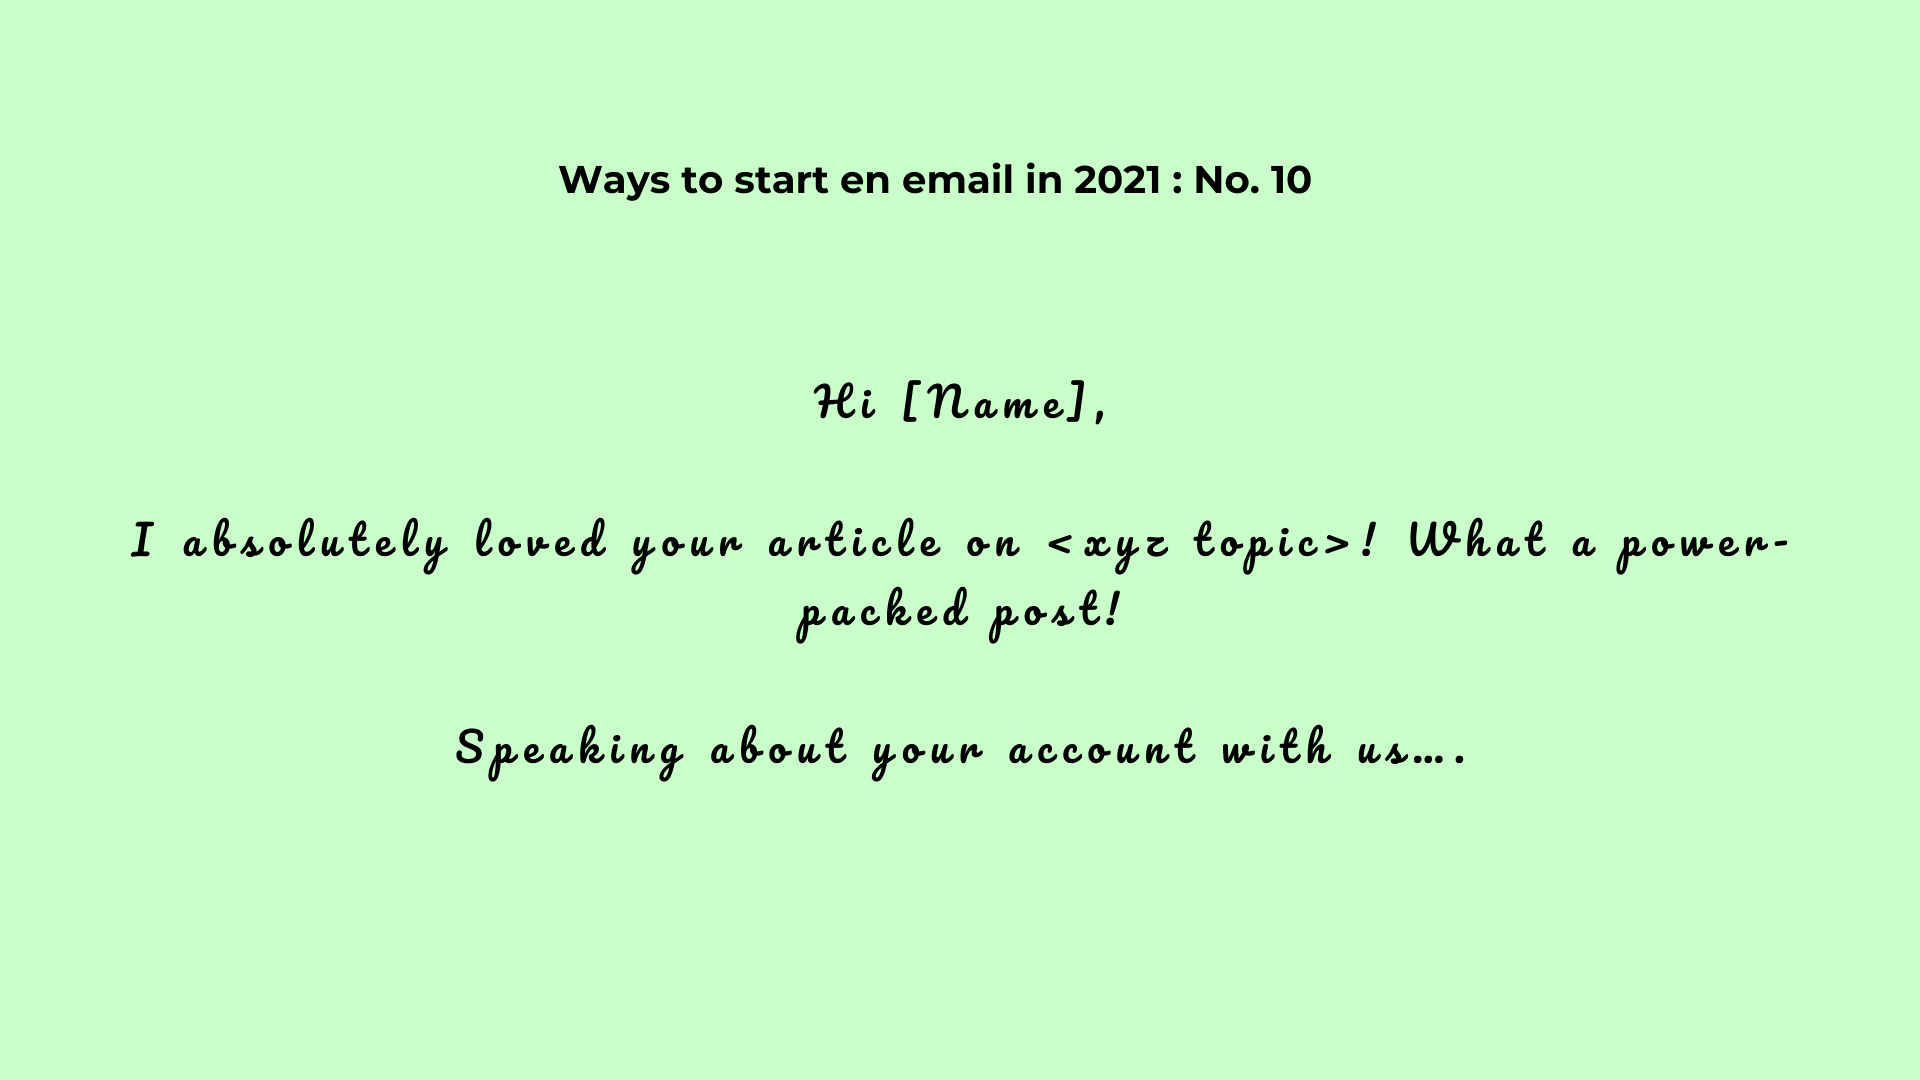 19-ways-to-start-an-email-way10